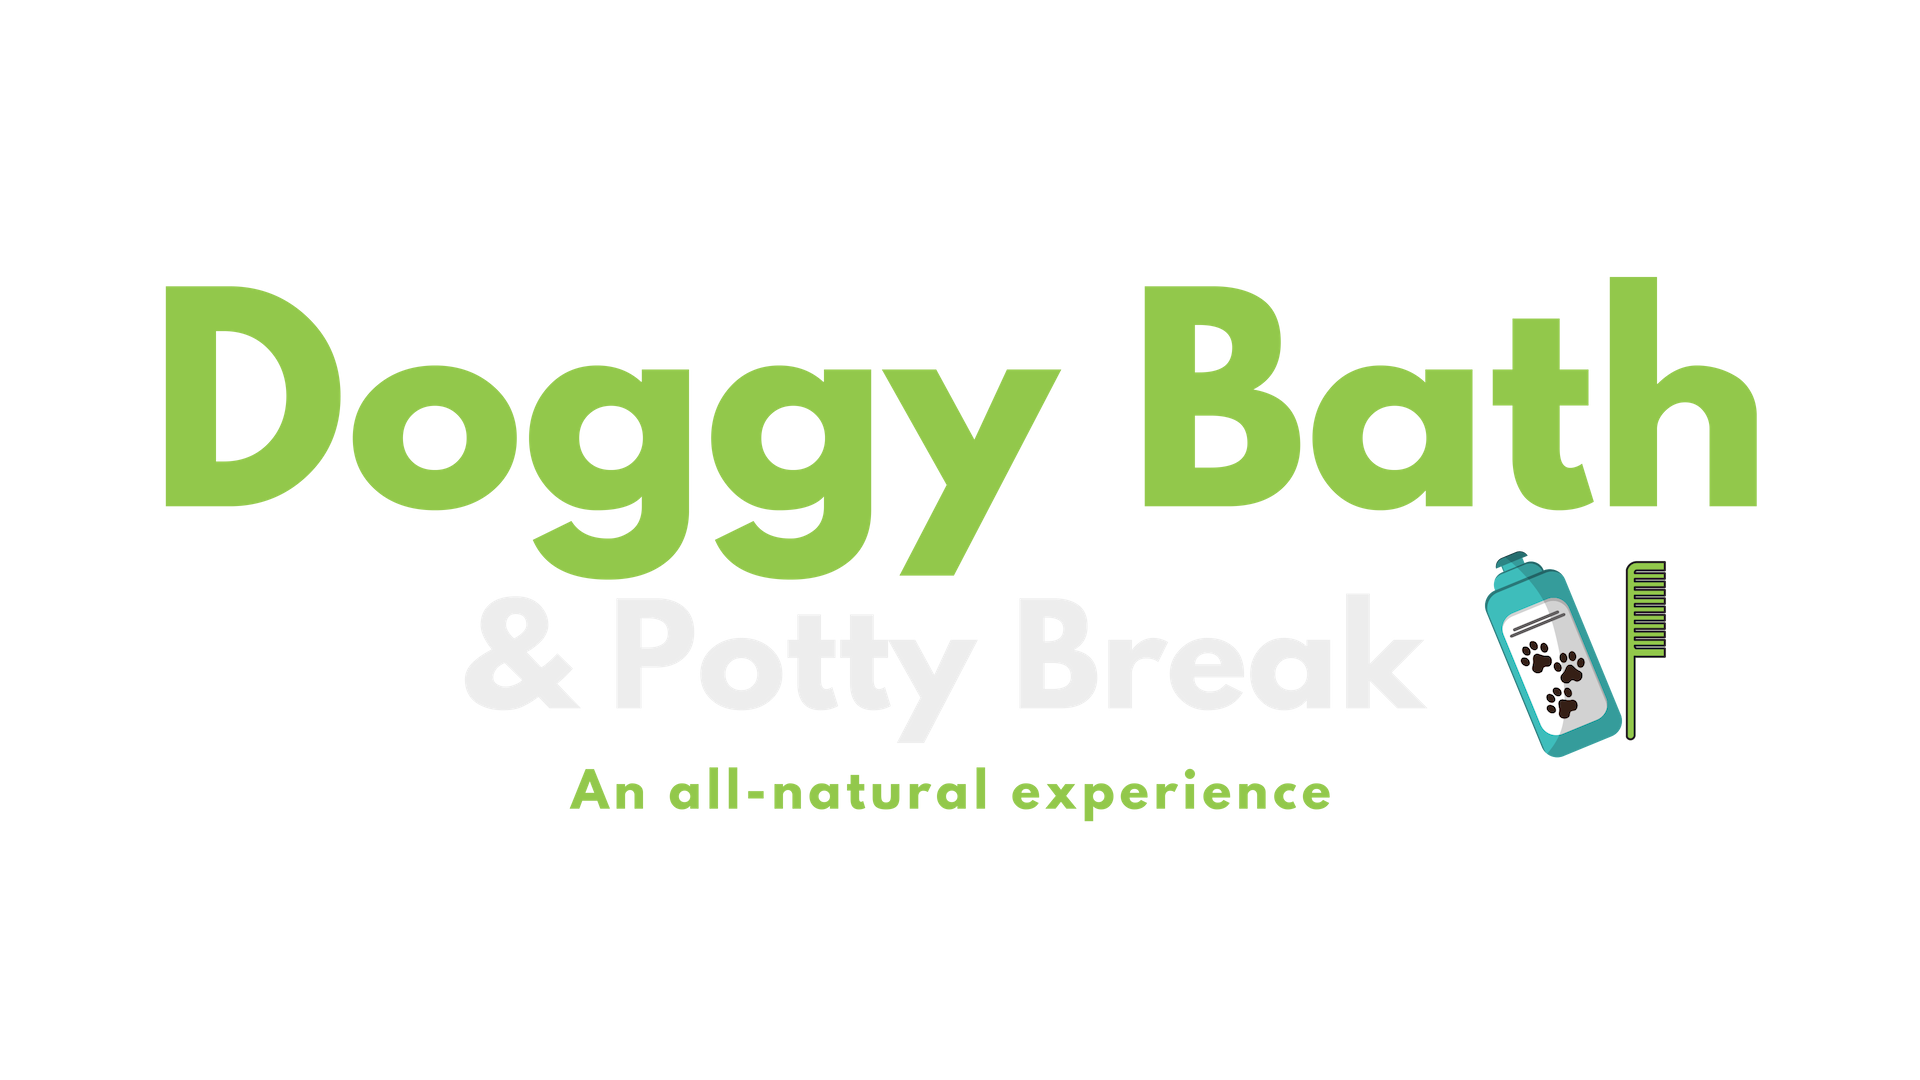 - A full bath and hand dry by our Pet Stylist team. Potty Break included.Small Dog (35lb or less) - $43Medium Dog (36lb-60lb)- $48Large Dog (61lb- 100lb) - $53**For pups over 100lbs, please call for pricing.